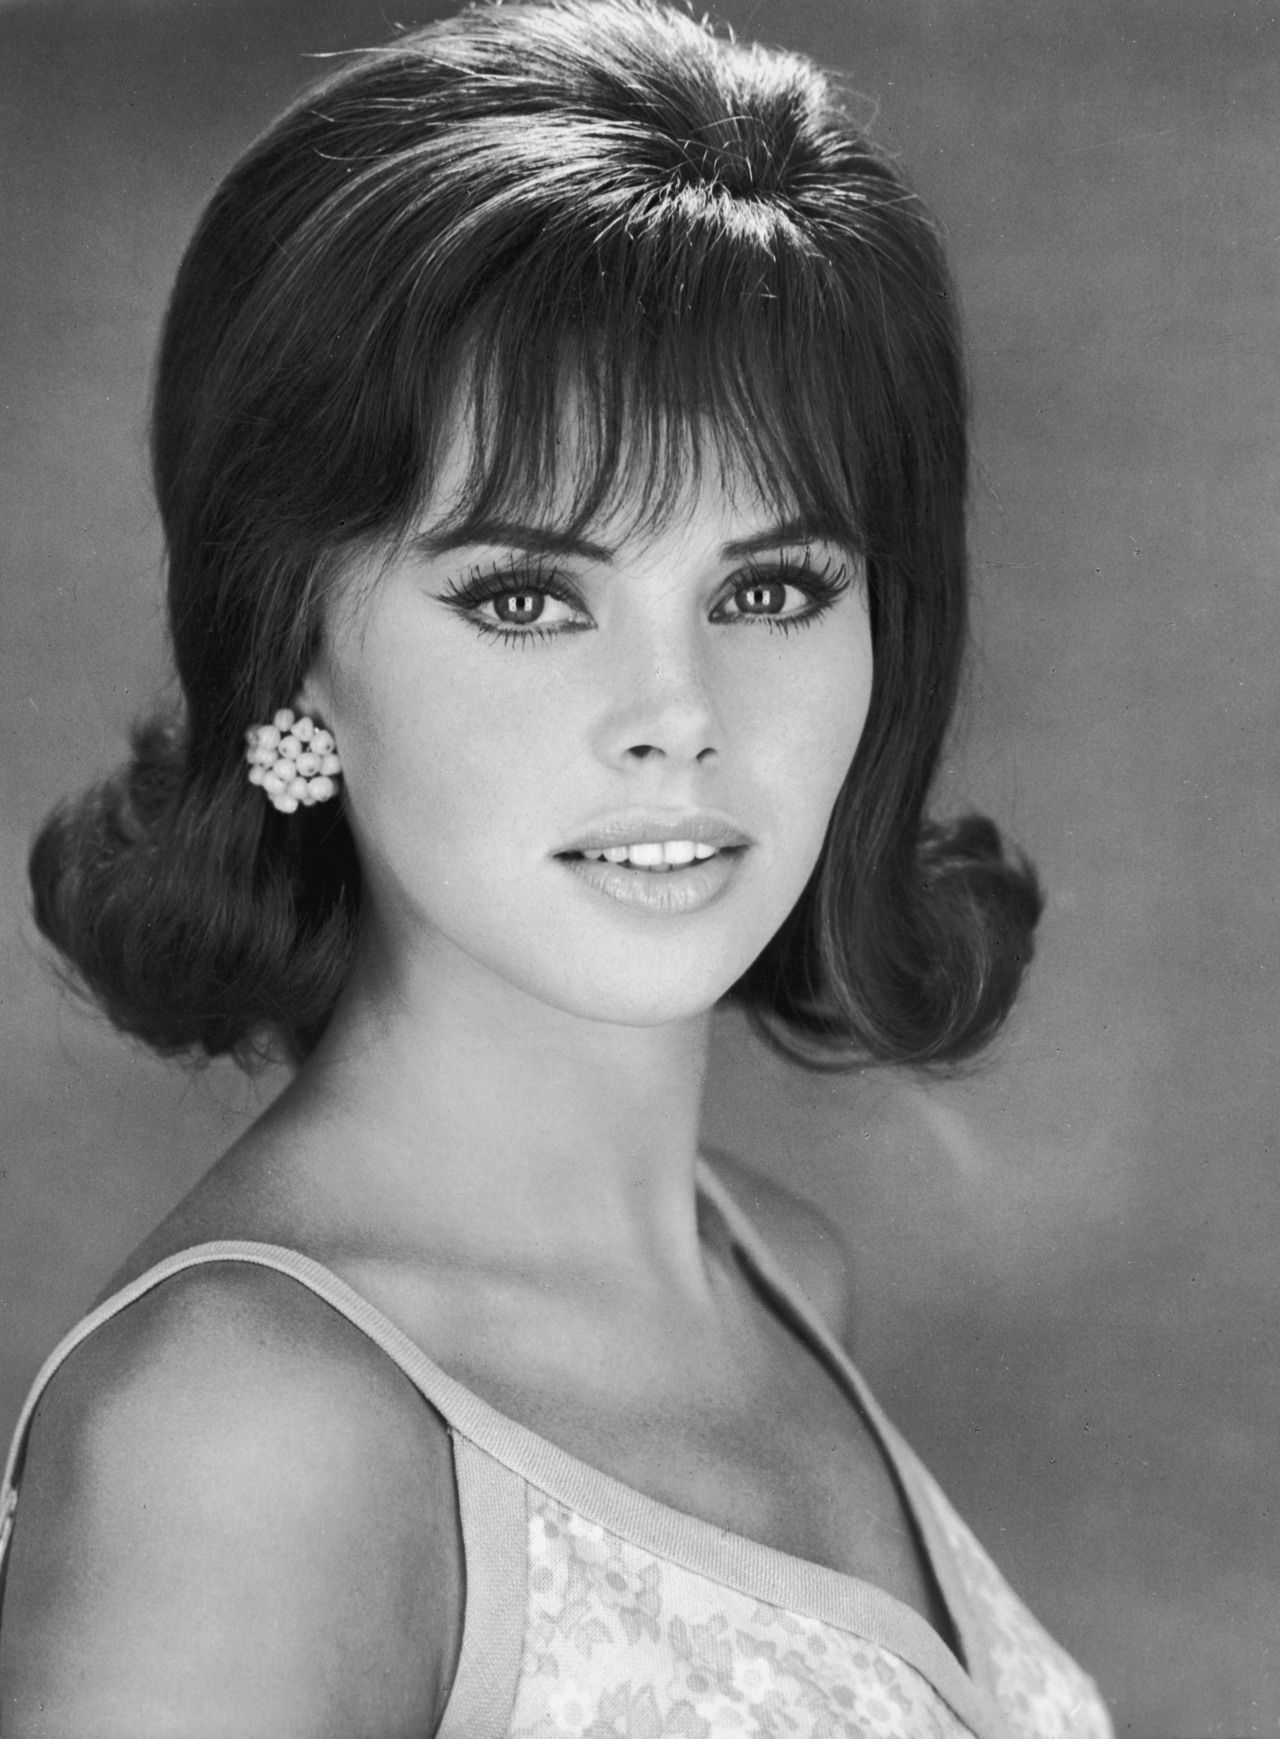 Home Women of the 1960s Hairstyles